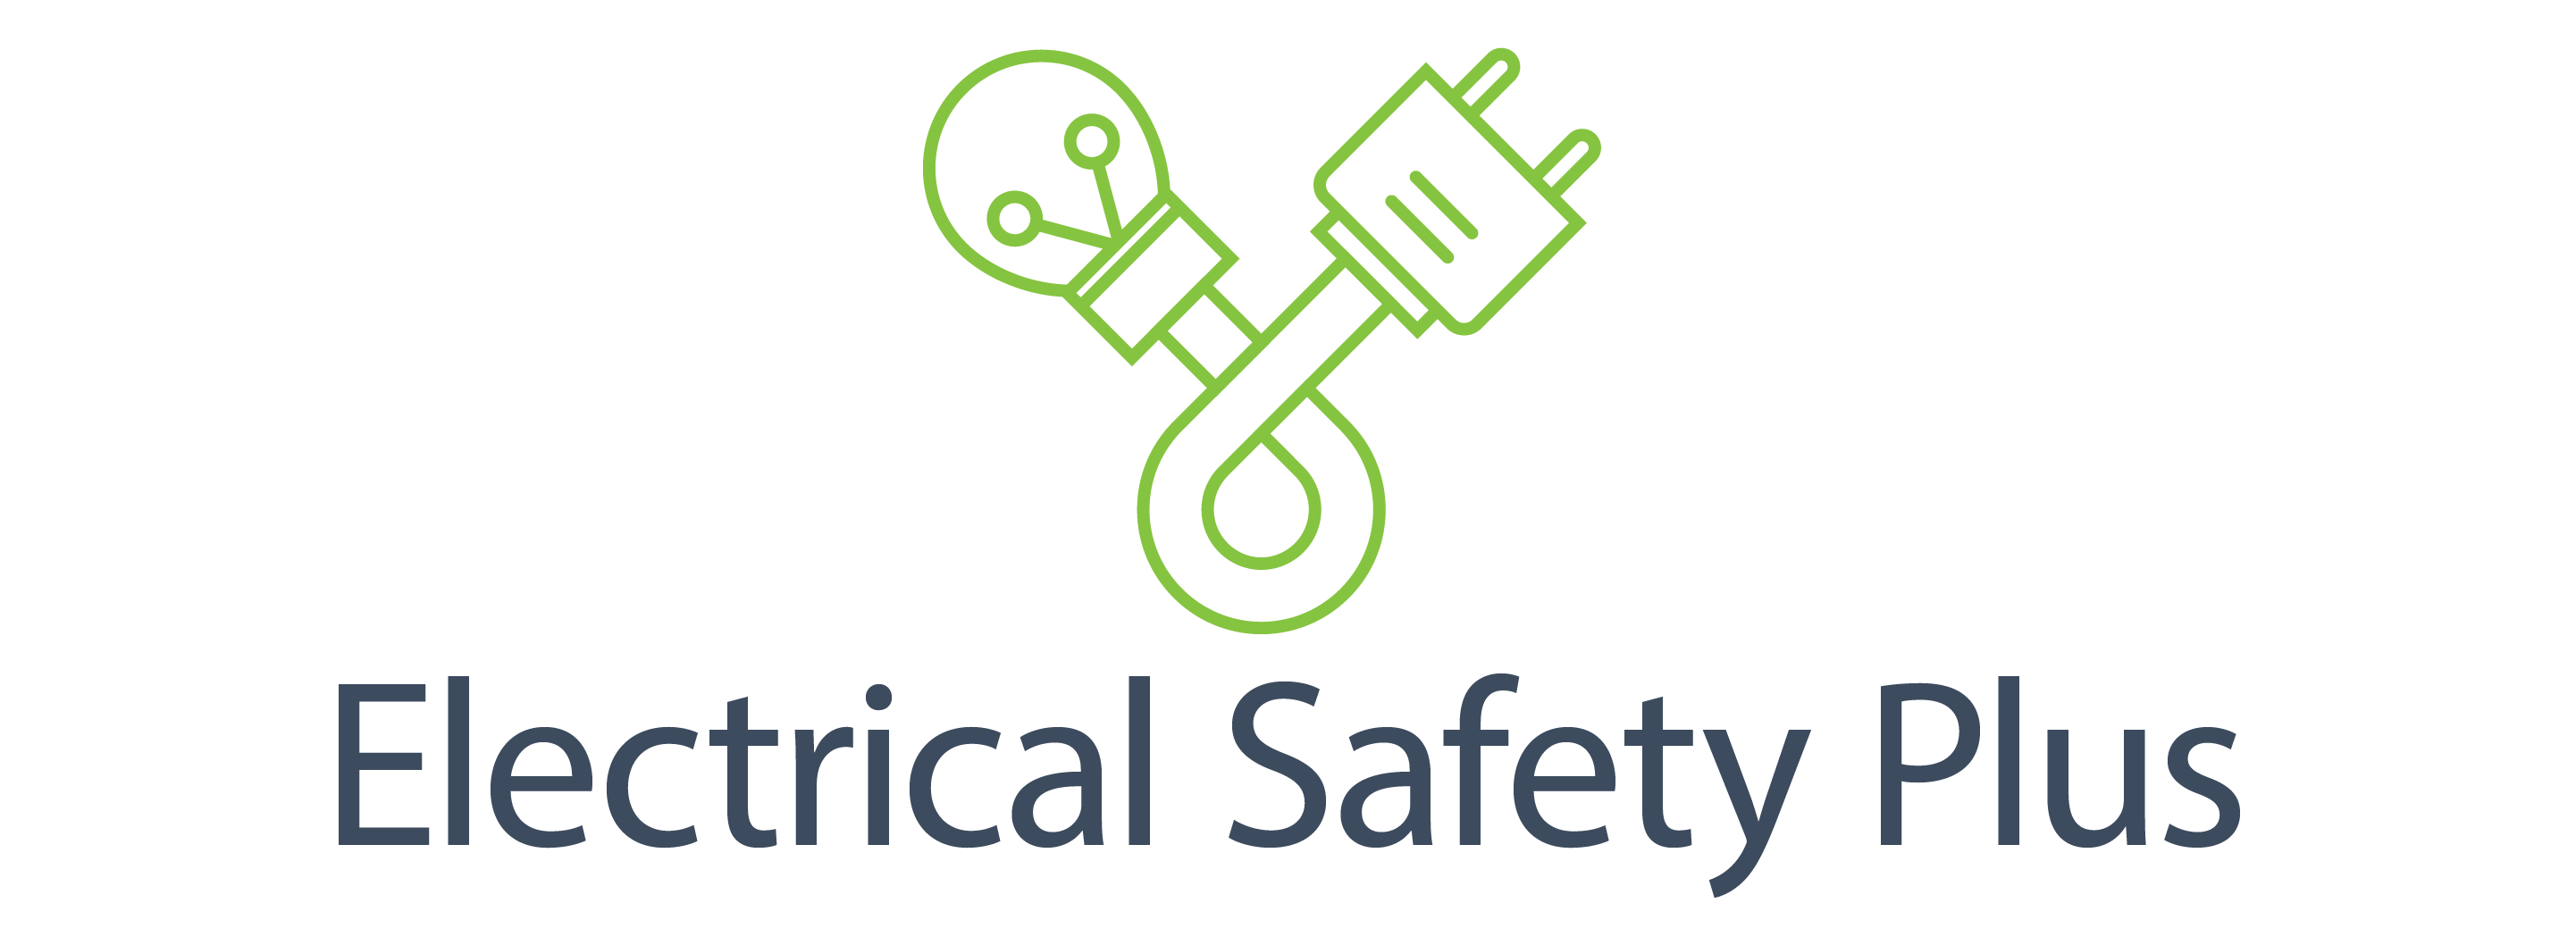 Electrical Safety Plus